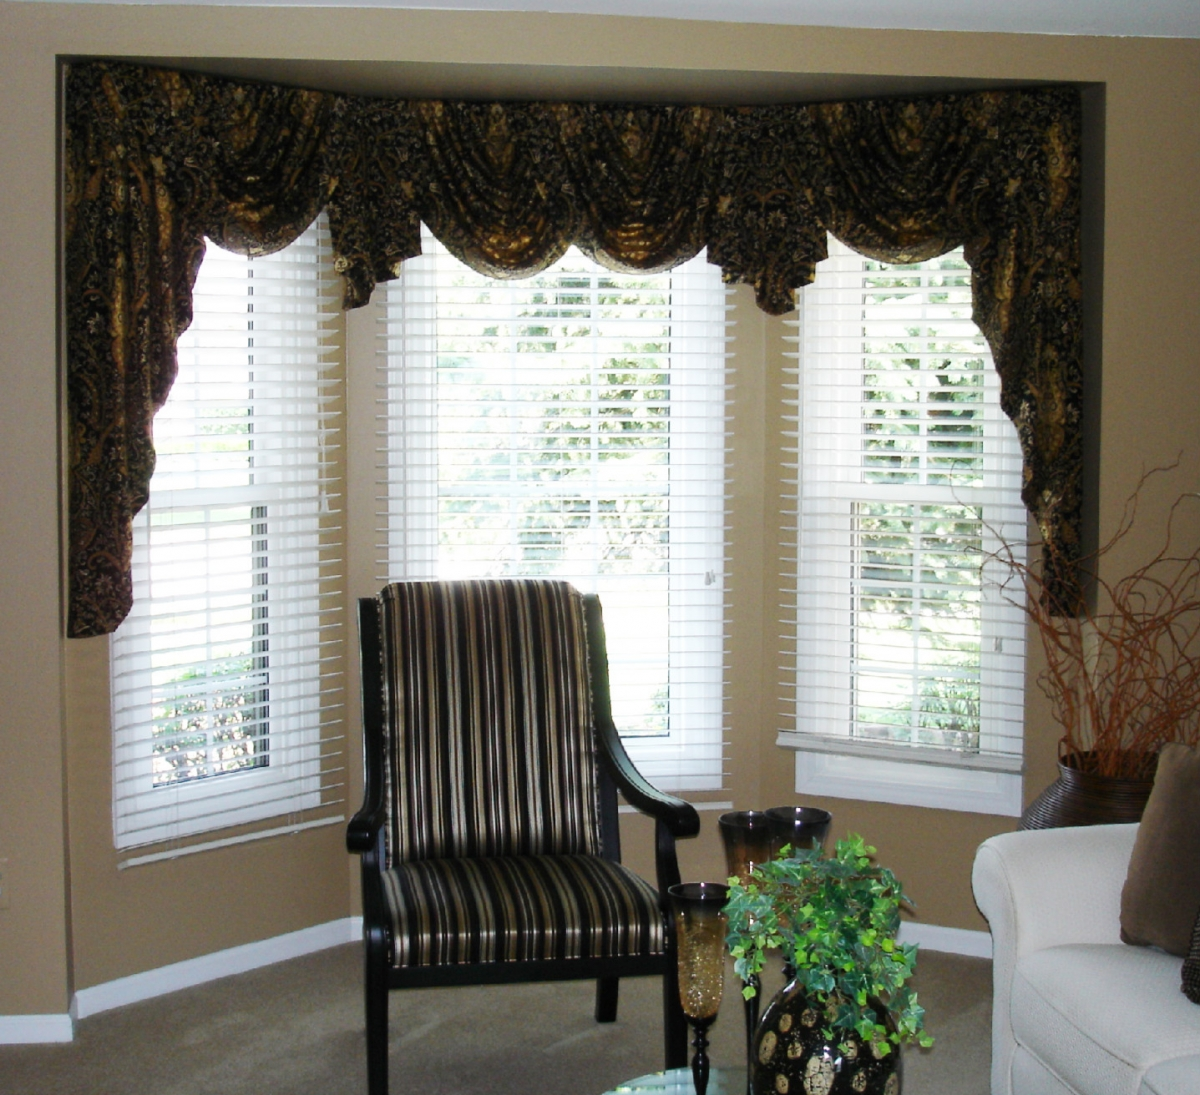 5 Curtain Ideas For Bay Windows Curtains Up Blog: Swags And Jabots In A Bay Window » Susan's Designs